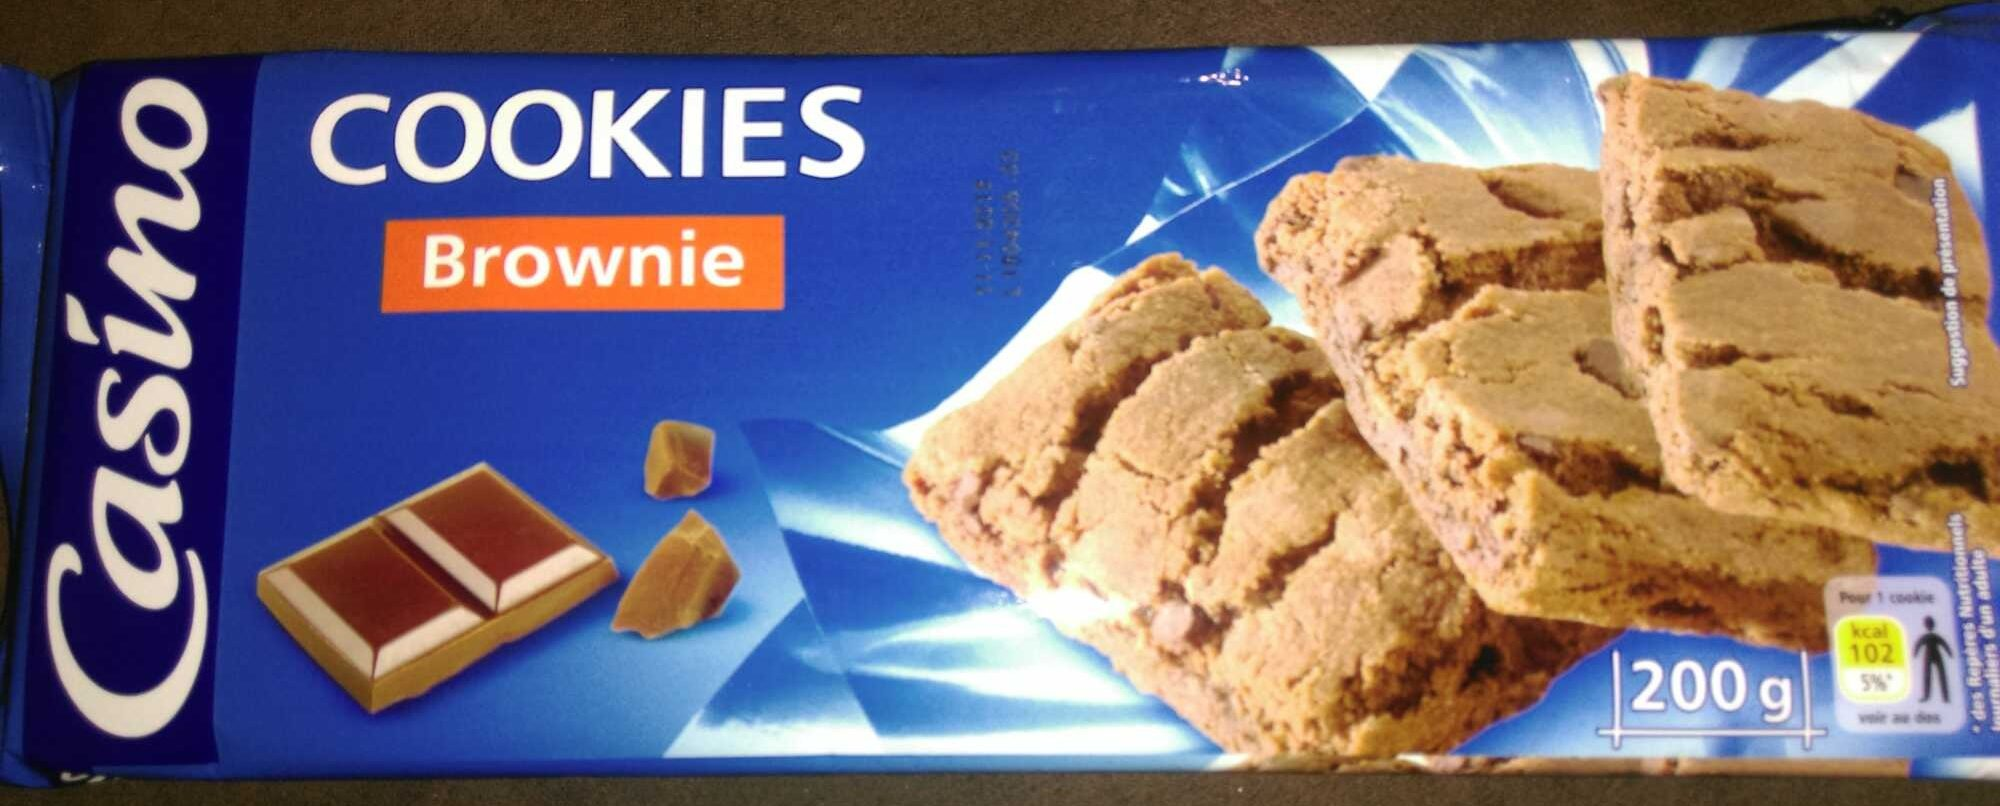 Cookies Brownie - Product